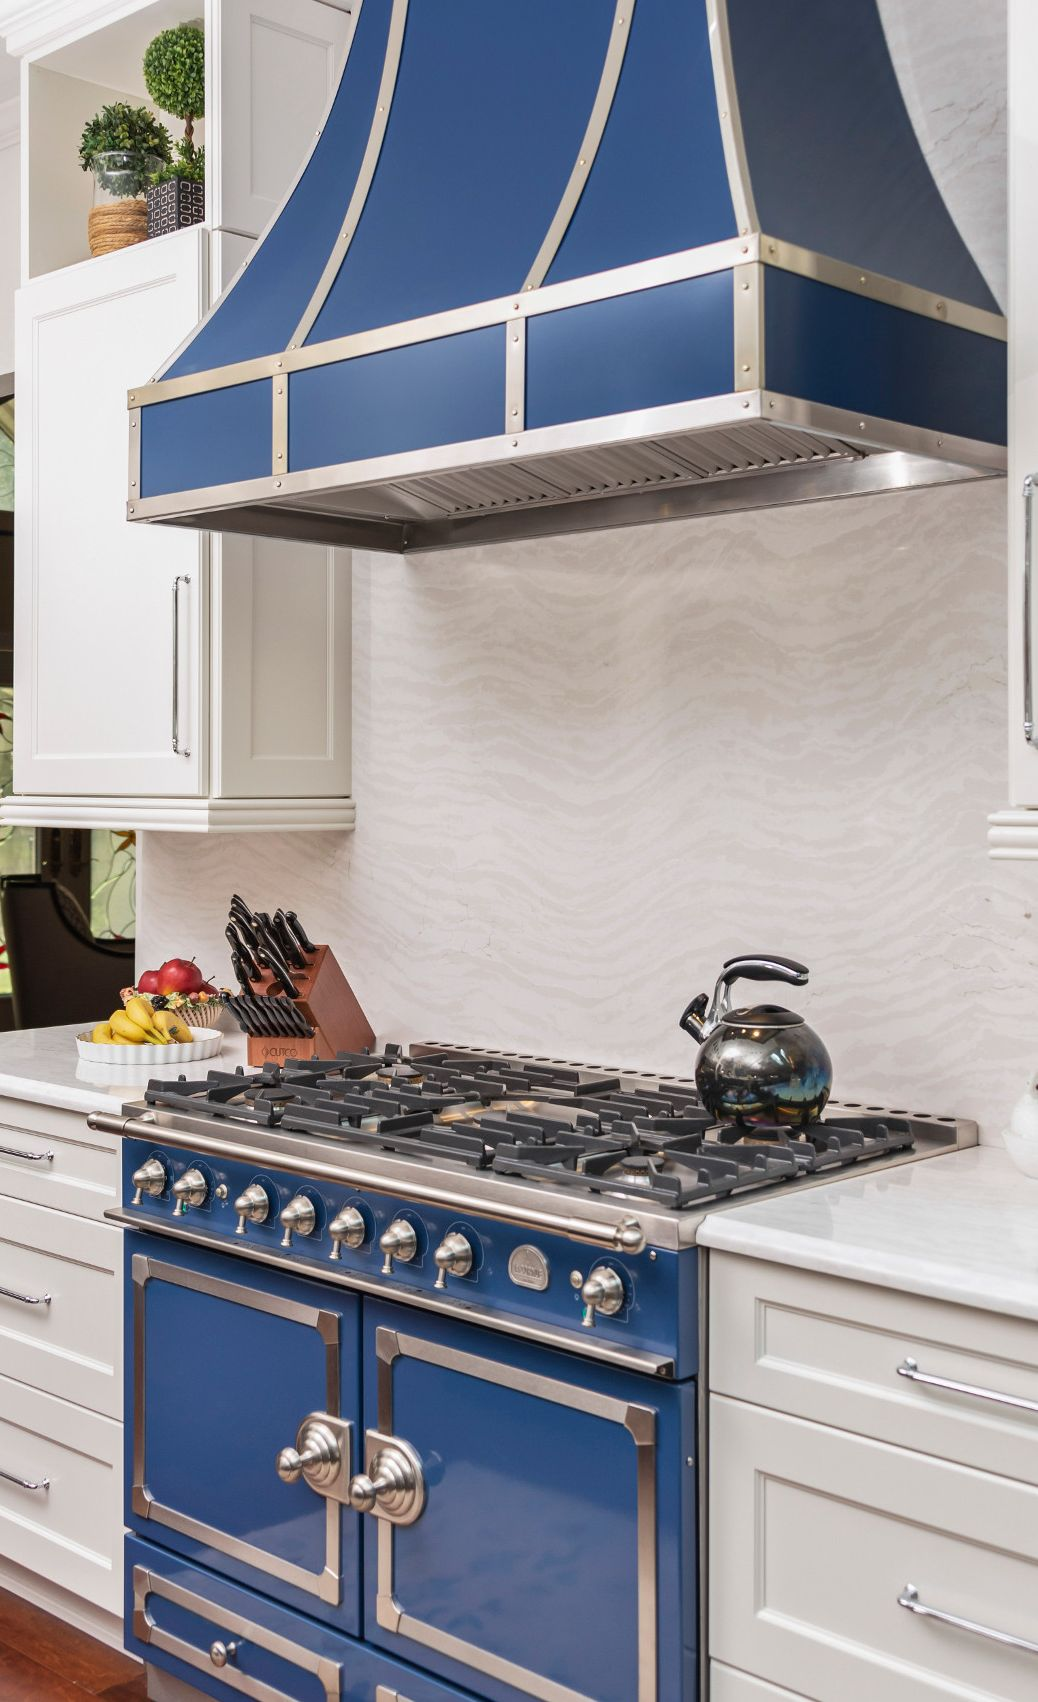 Cambria Delgatie™ creates a cascading tone-on-tone effect as a backsplash and countertops in this blue-and-white kitchen.